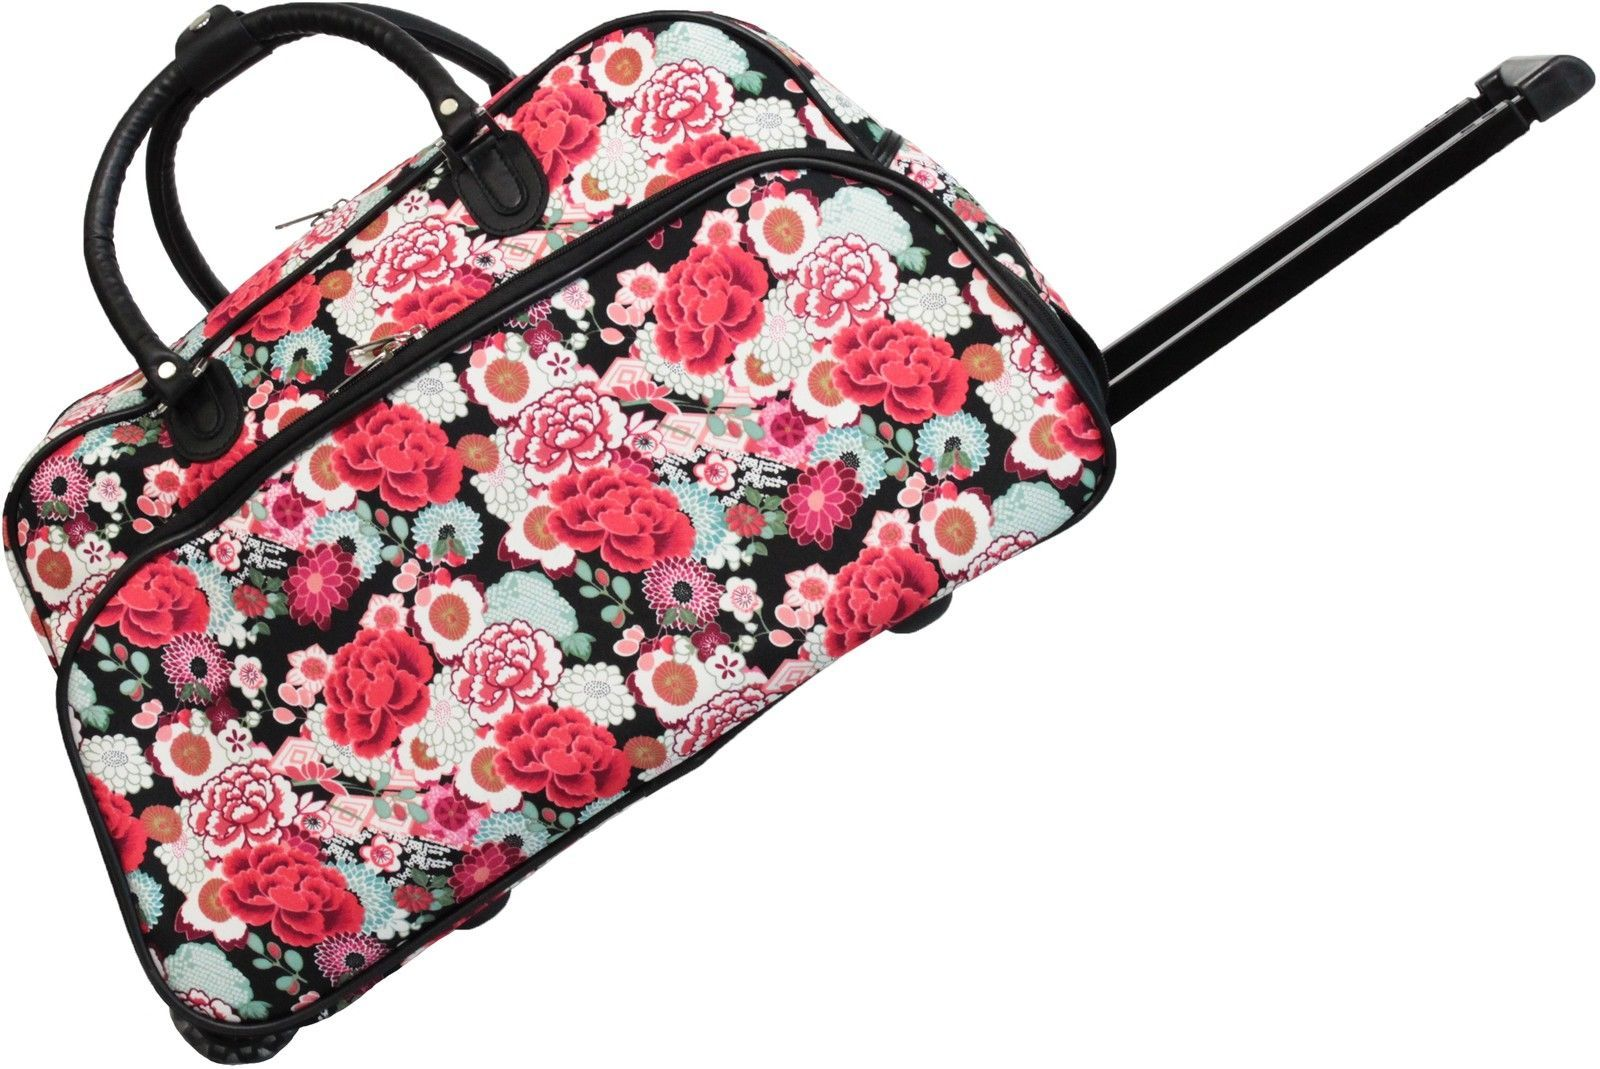 61.71$  Buy here - http://vibmp.justgood.pw/vig/item.php?t=2pojgvy9471 - Rolling Duffle Bag Carry On Flower 21 inch Wheeled Tote Luggage Overnight Travel 61.71$